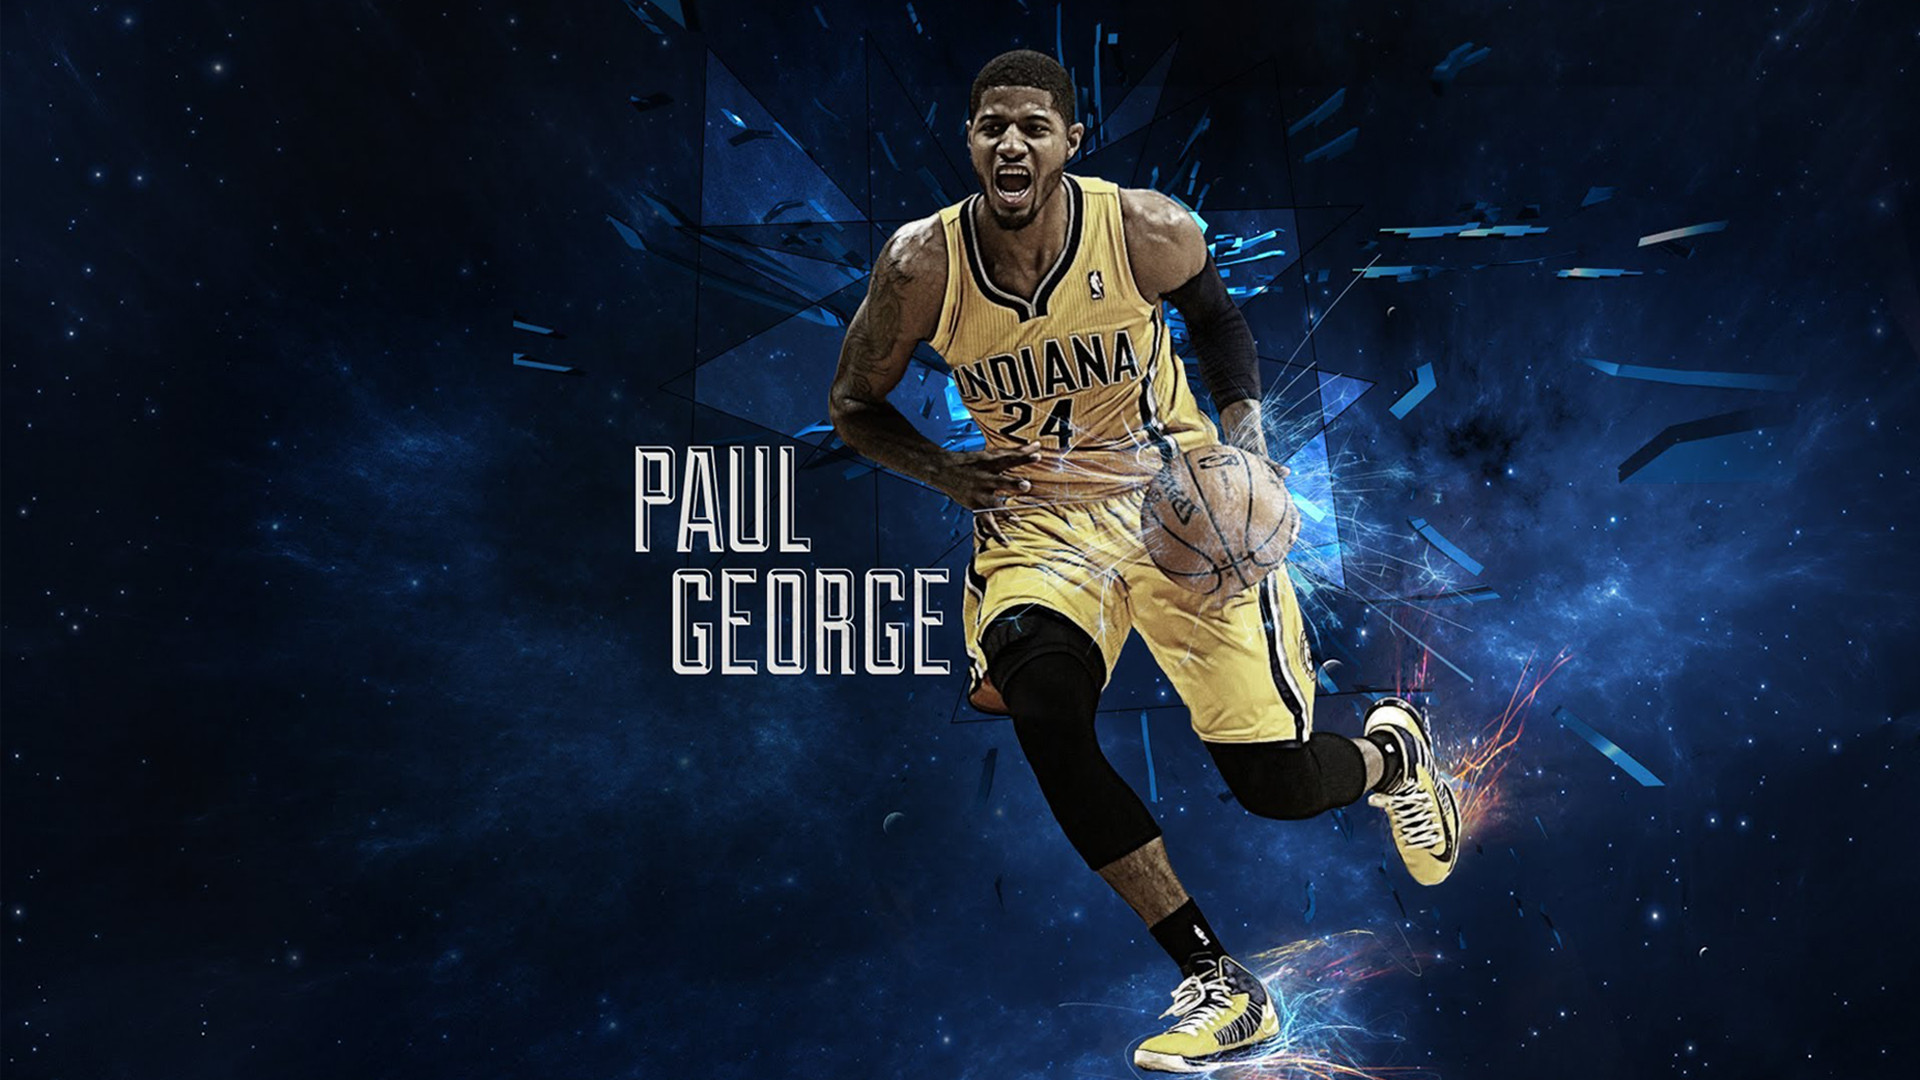 1920x1080 Basketball NBA Wallpapers | PixelsTalk Net